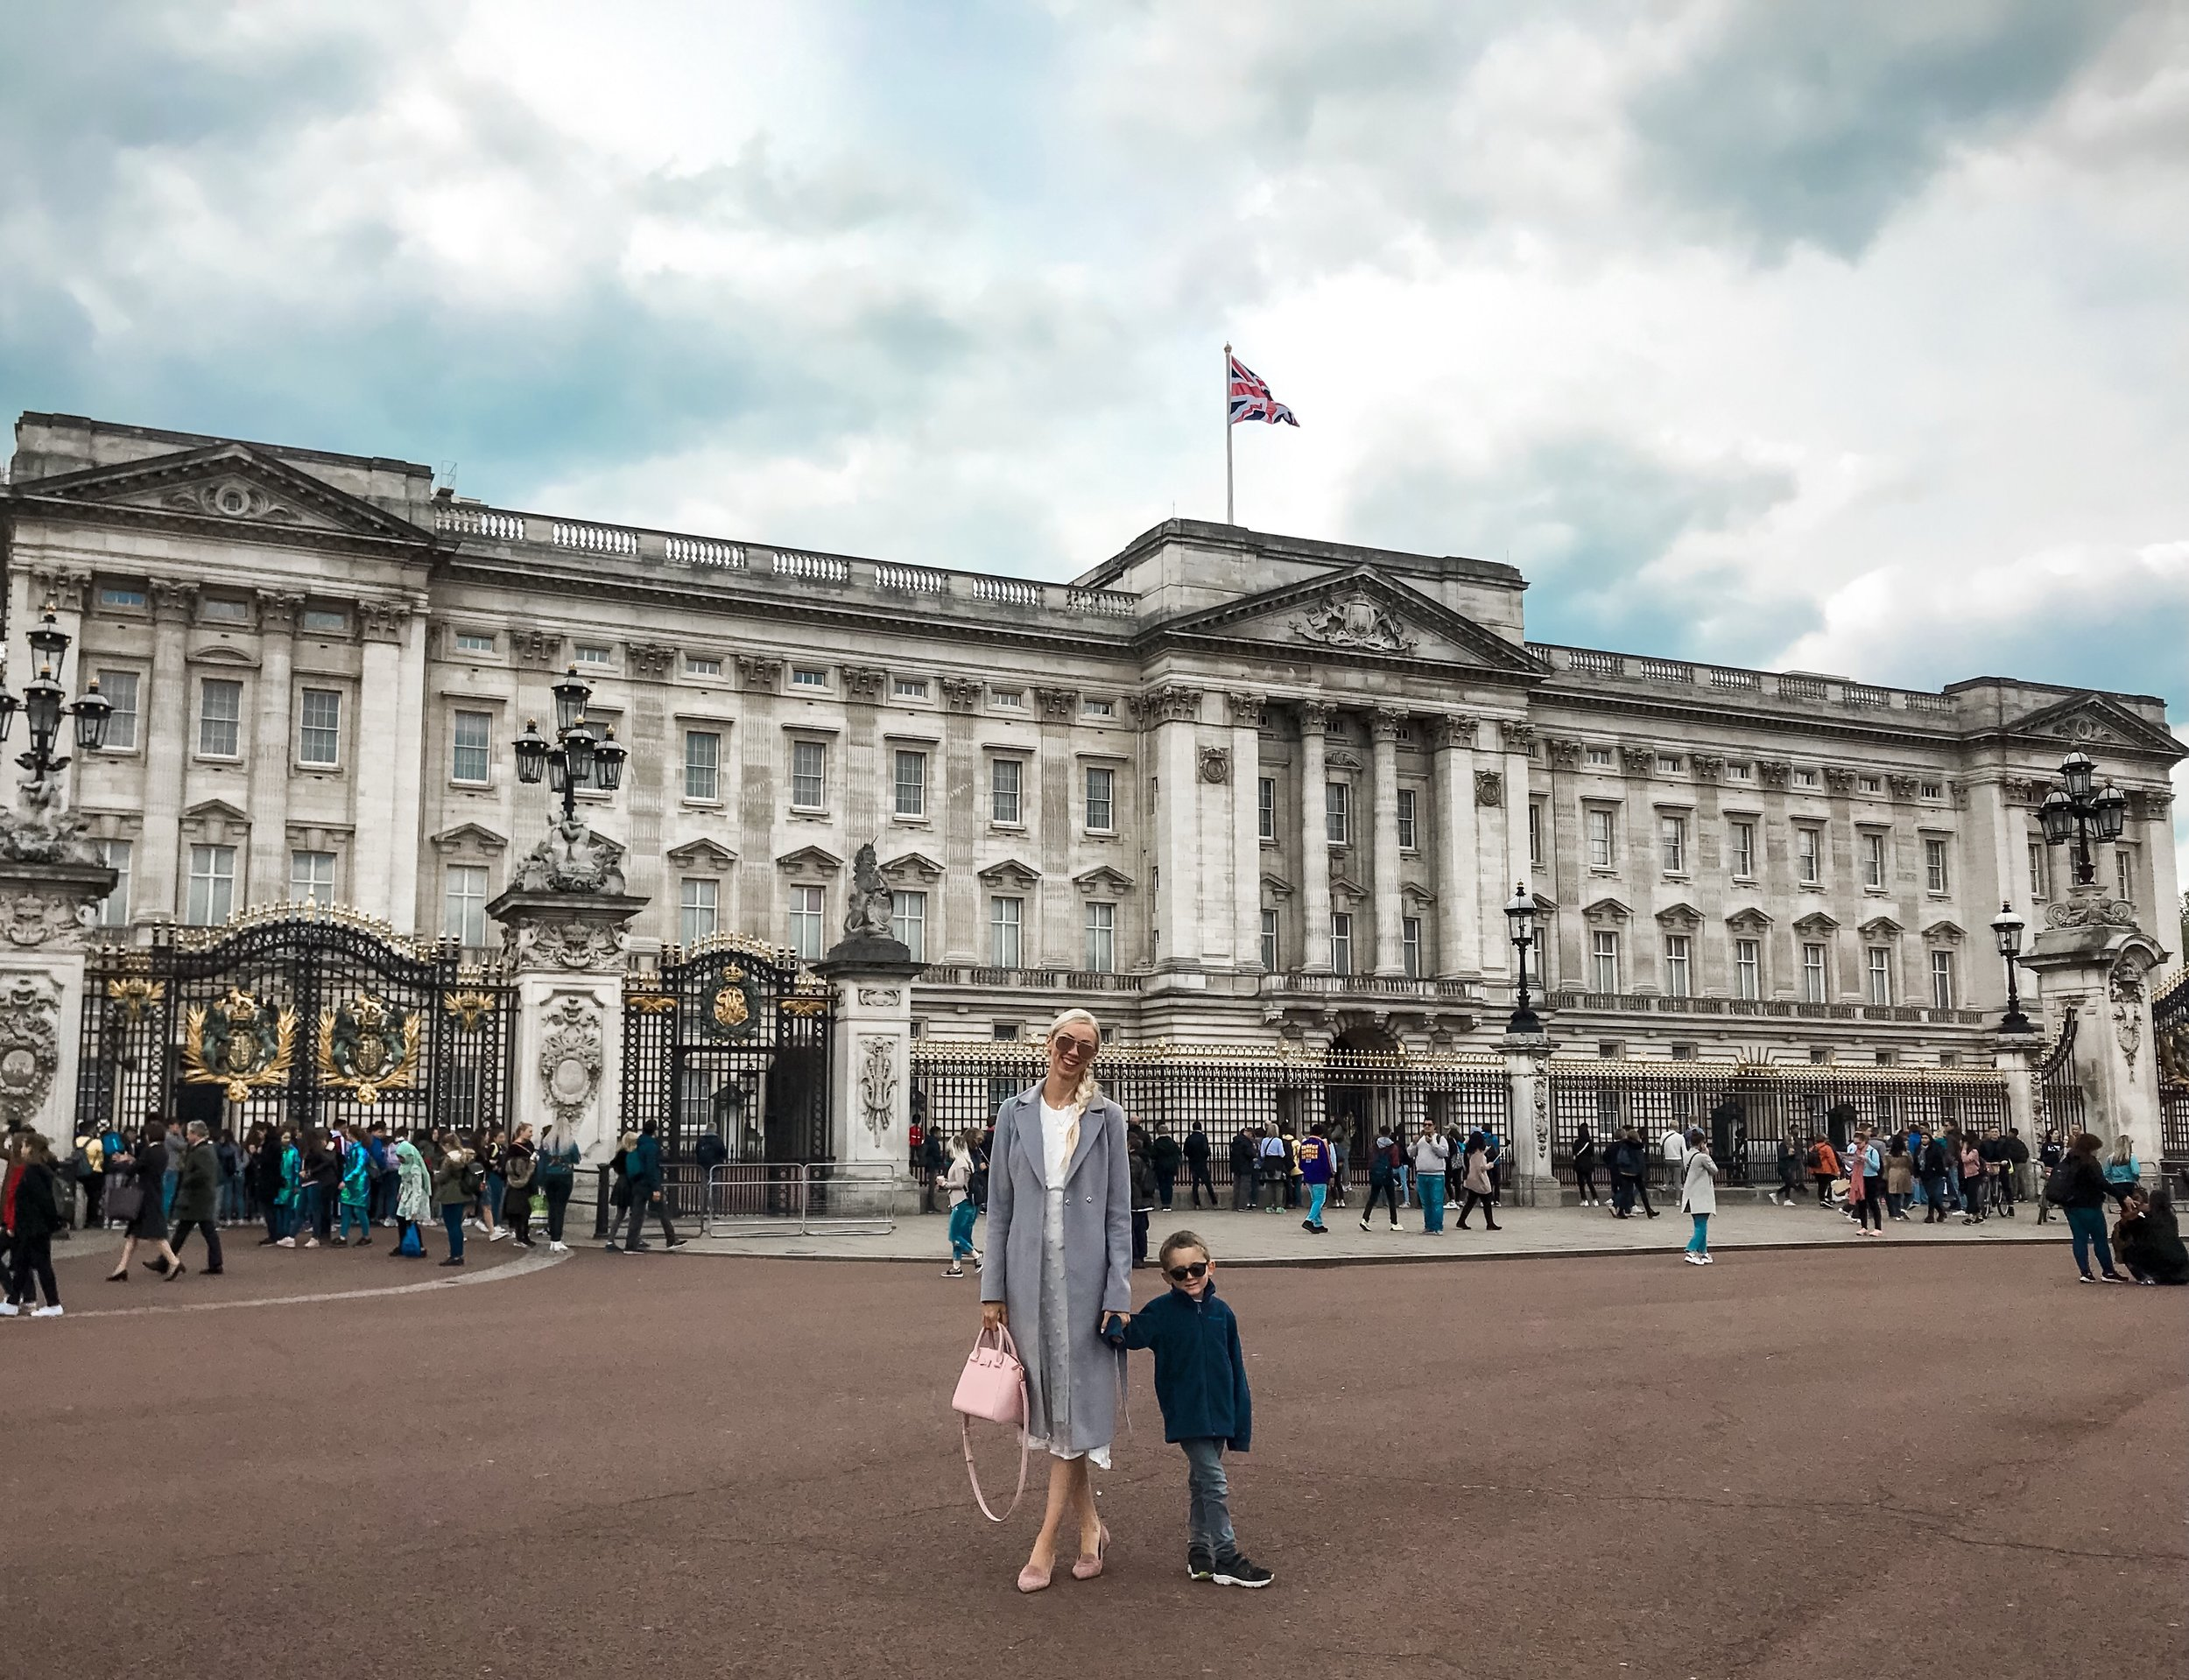 london-buckingham-palace-tips-for-traveling-with-kids.jpg